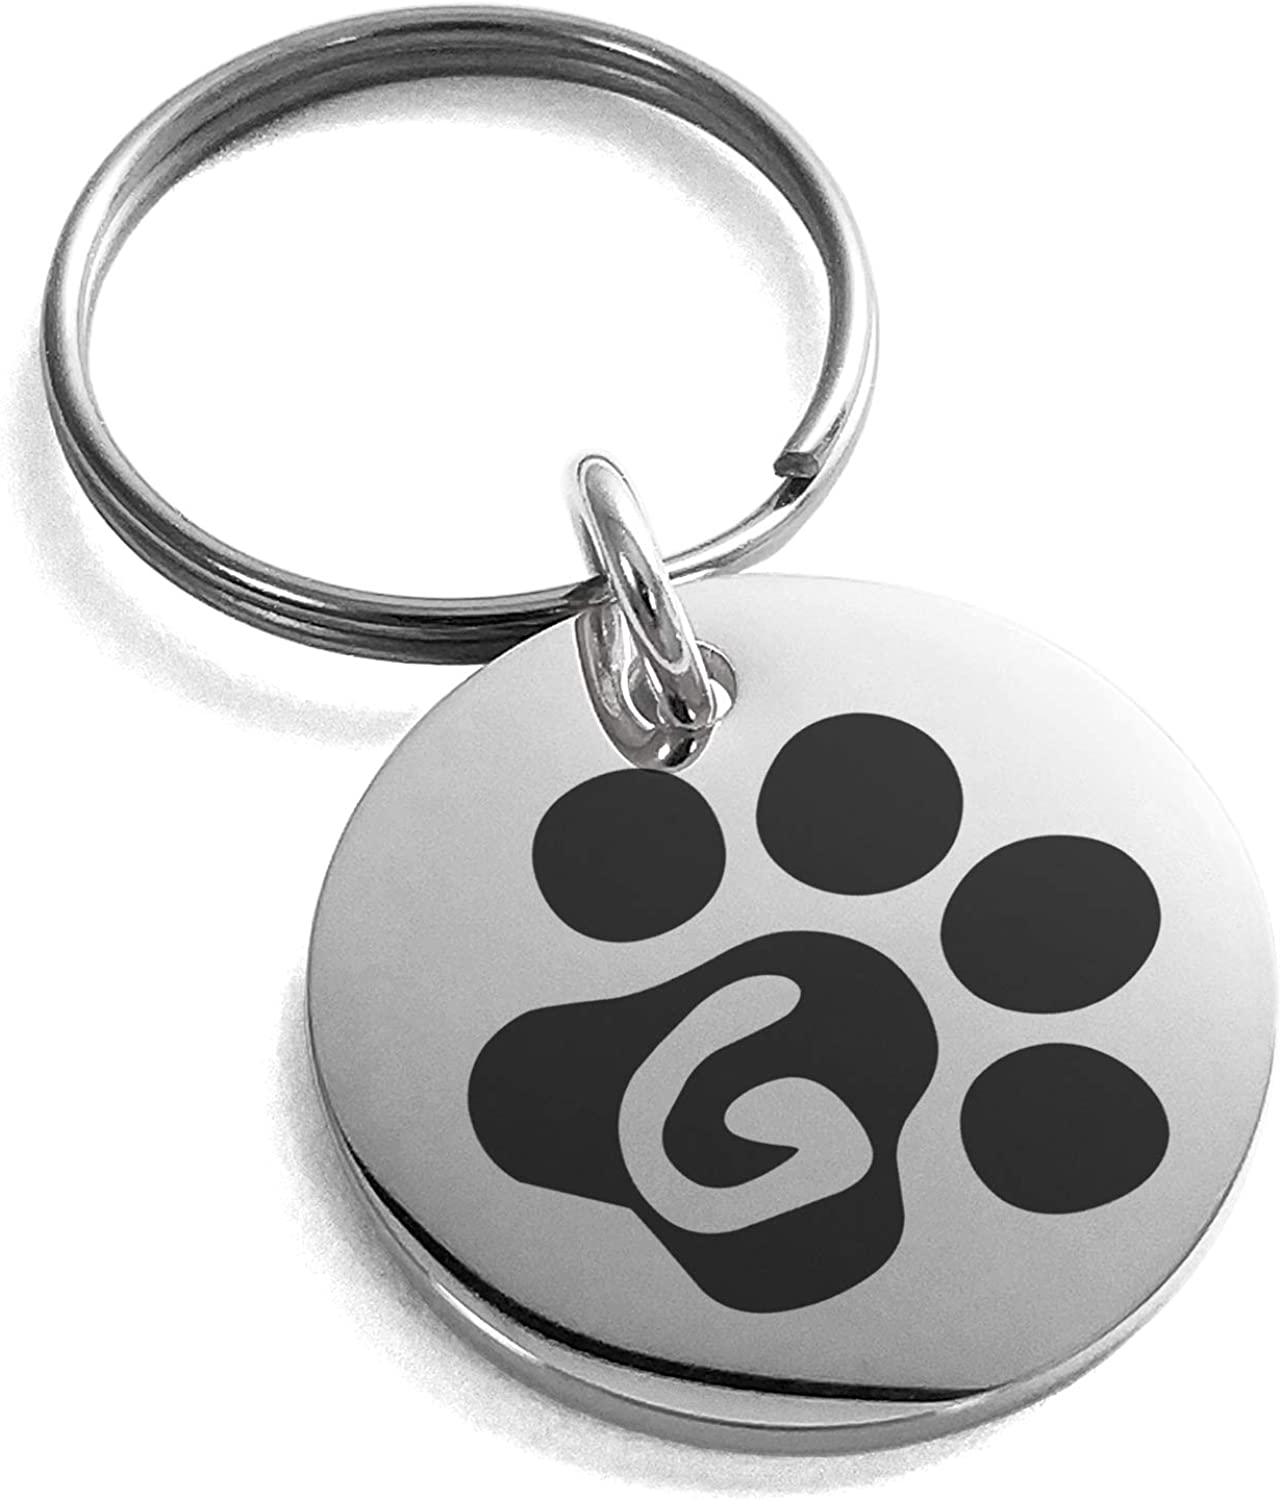 Tioneer Stainless Steel Letter G Initial Cat Dog Paws Monogram Small Medallion Circle Charm Keychain Keyring